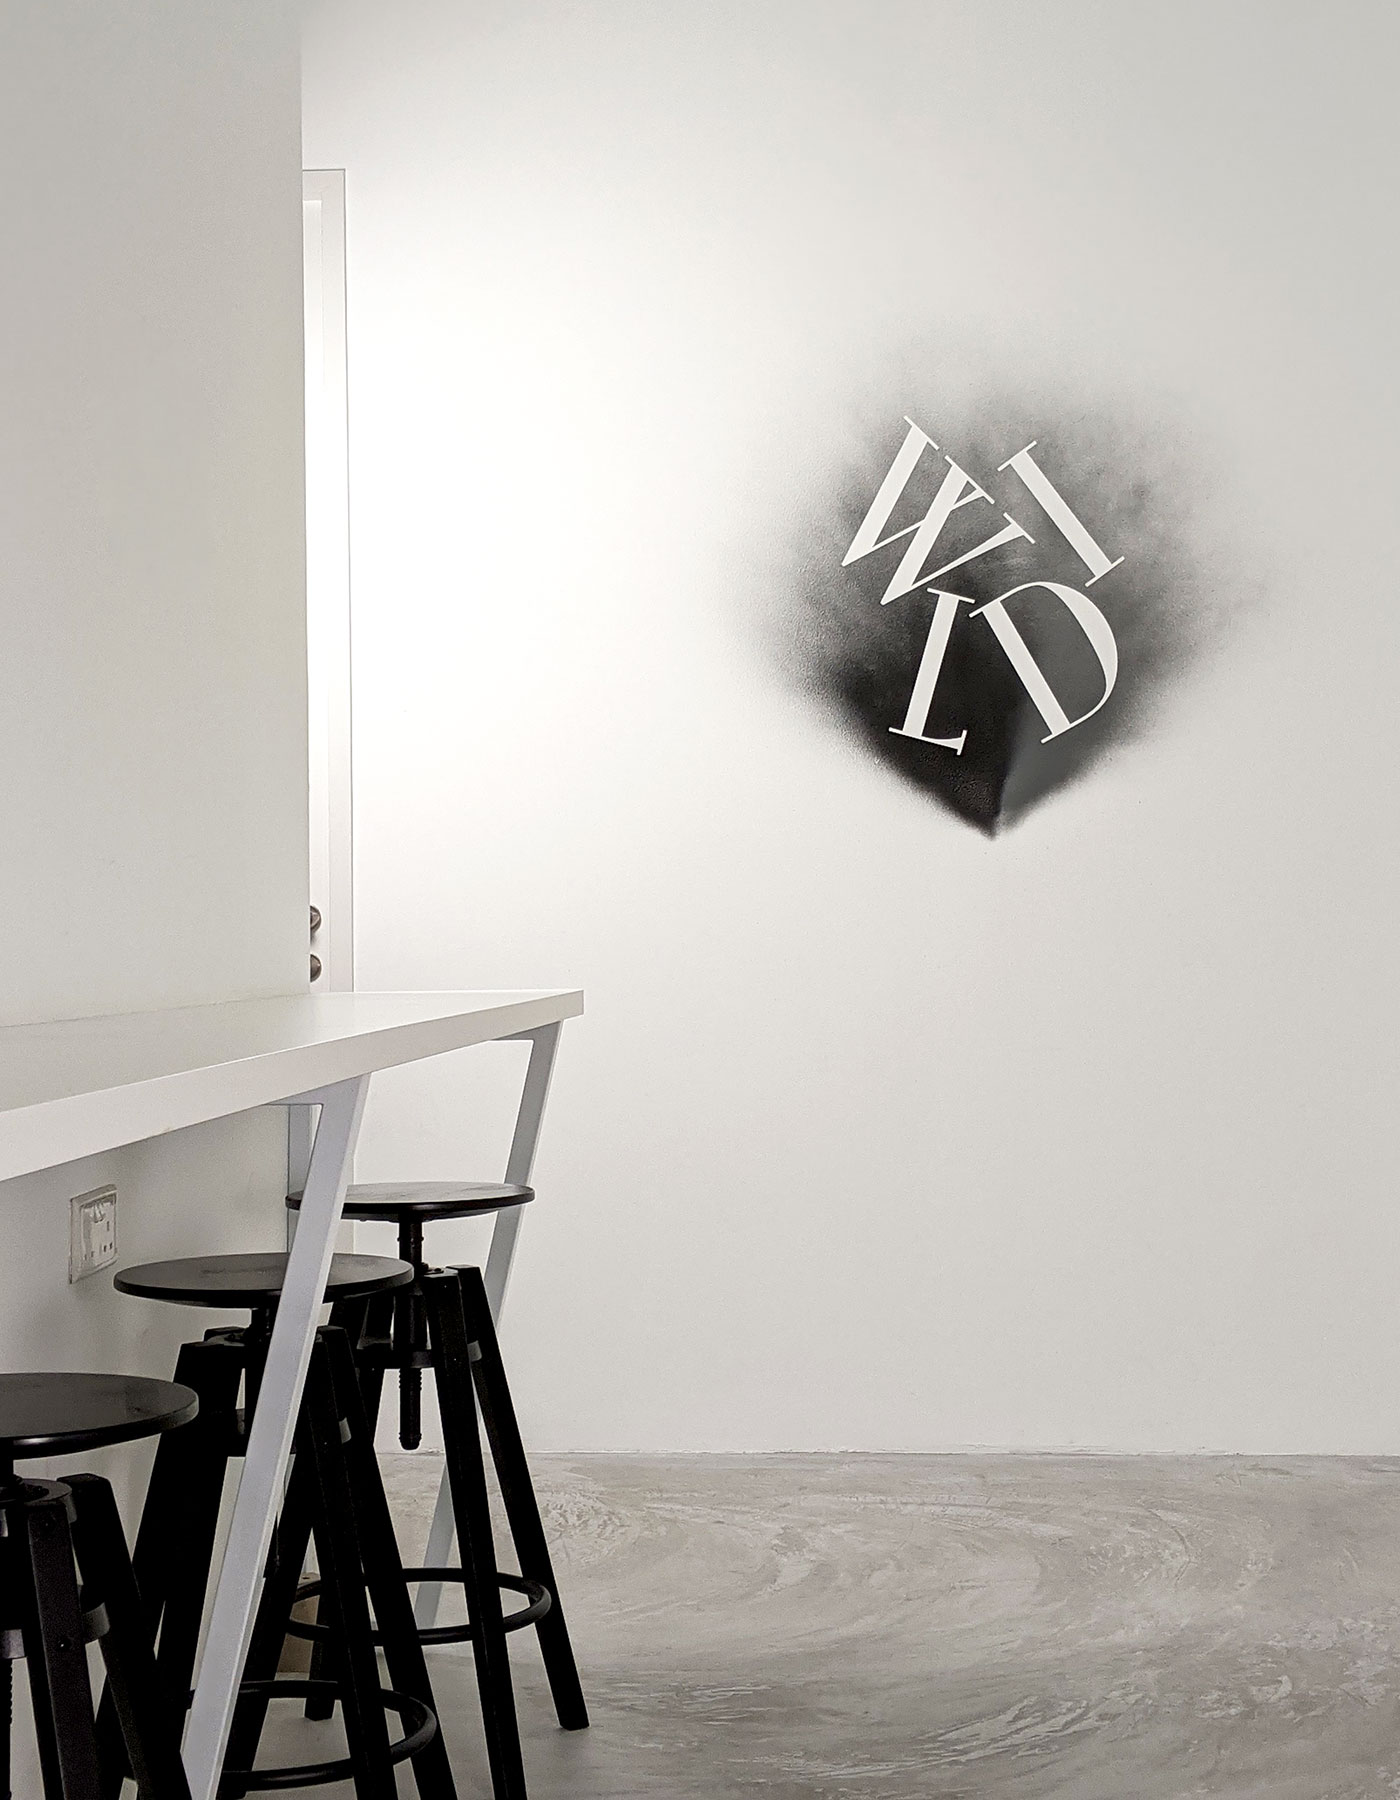 Interior of Wild Advertising & Marketing's office, a Singapore-based creative agency, with its logo on the wall